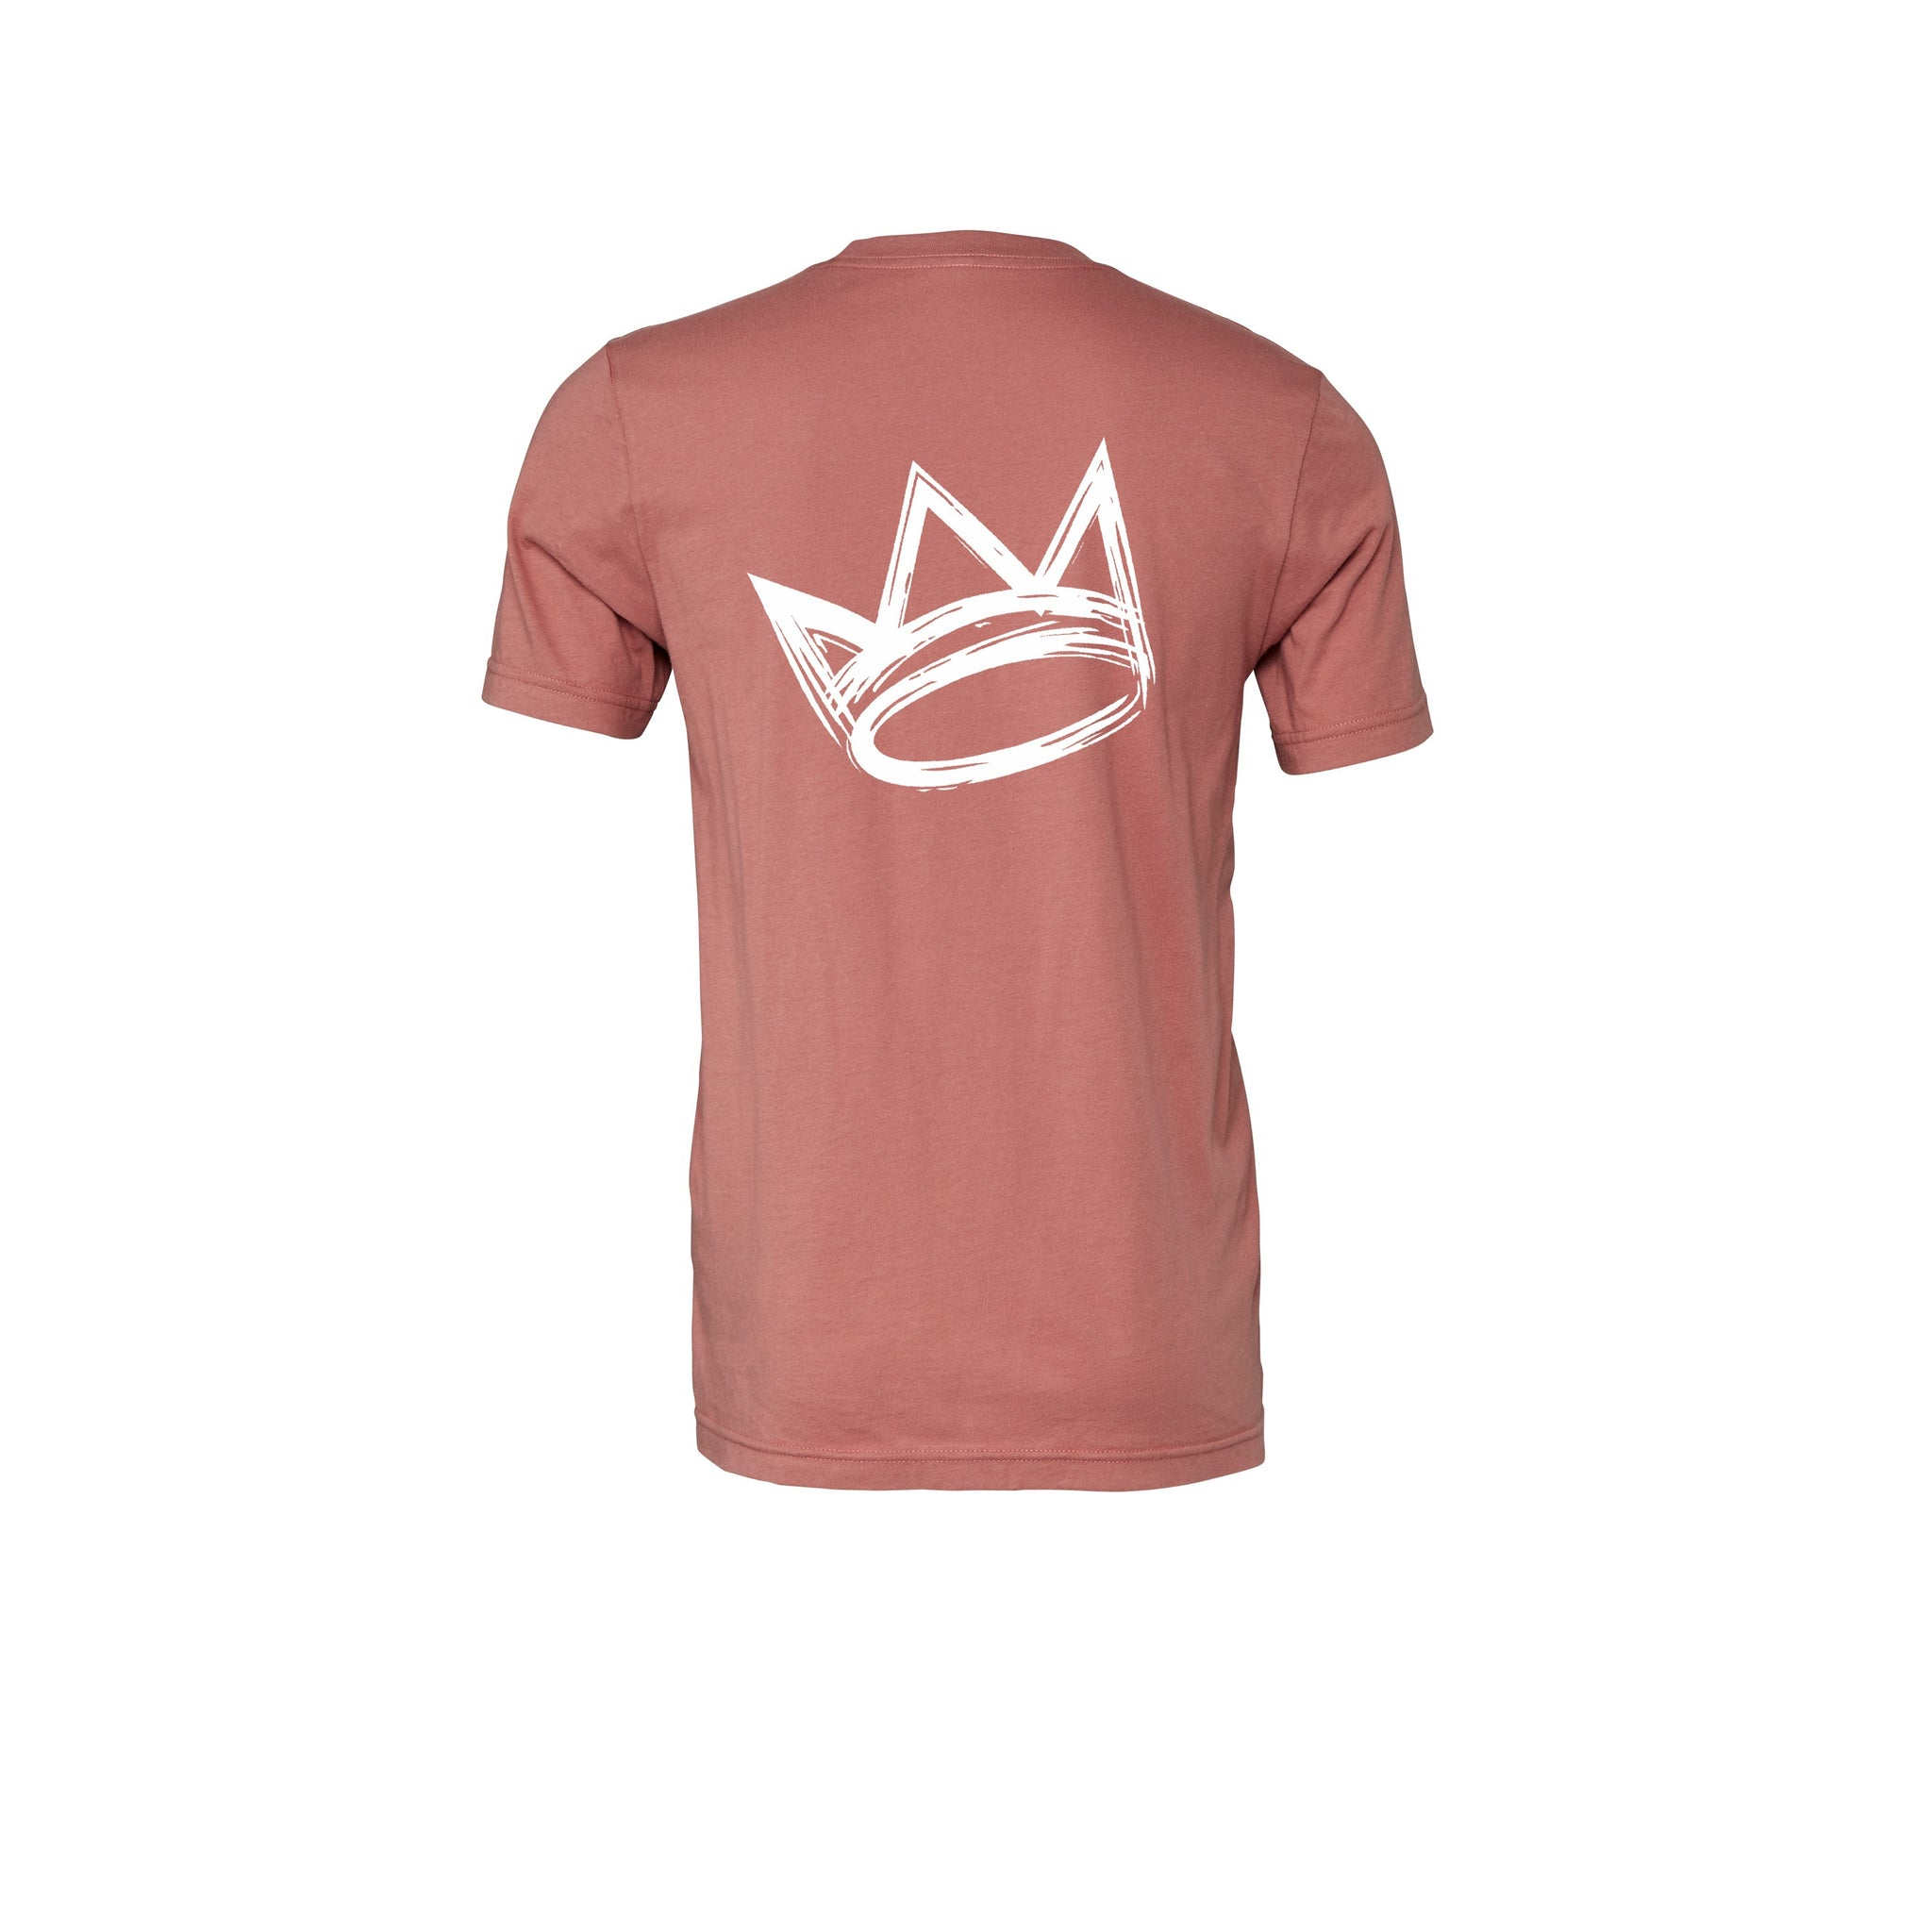 King Crown Collection (Mauve Short Sleeve T-Shirt White Crown)